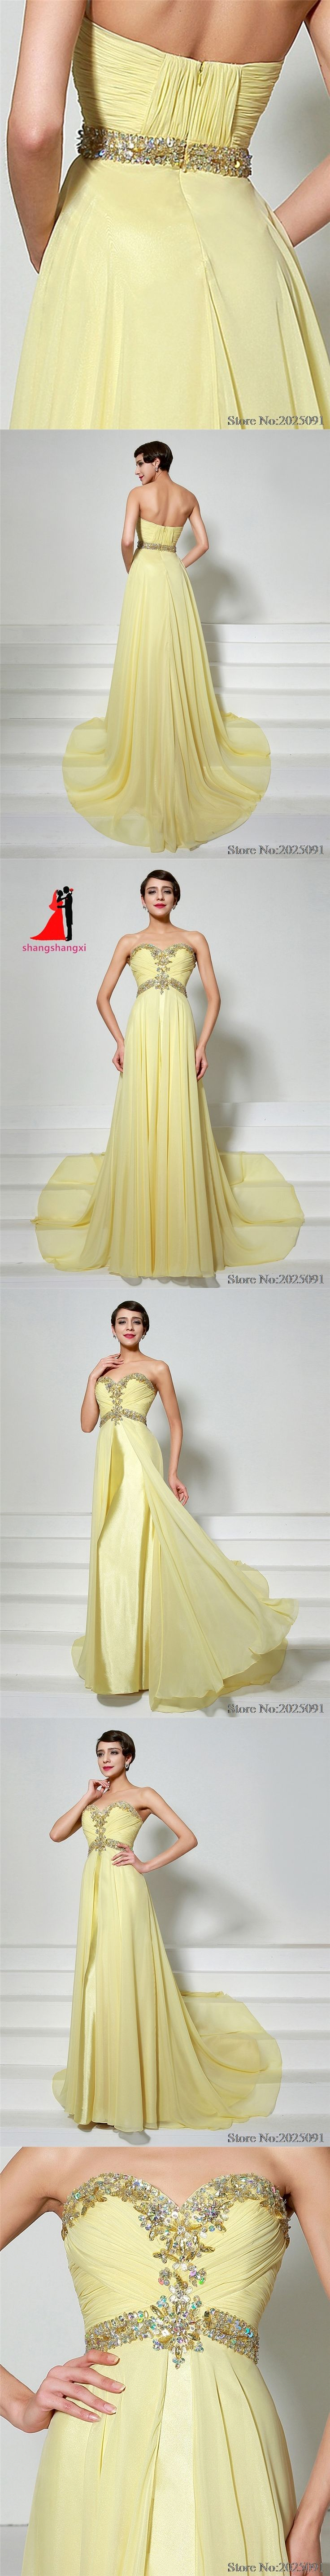 2017 Sweetheart Chiffon Yellow Evening Dresses vestido de festa longo Crystal Beads Prom Dresses Formal Evening Gowns Dresses